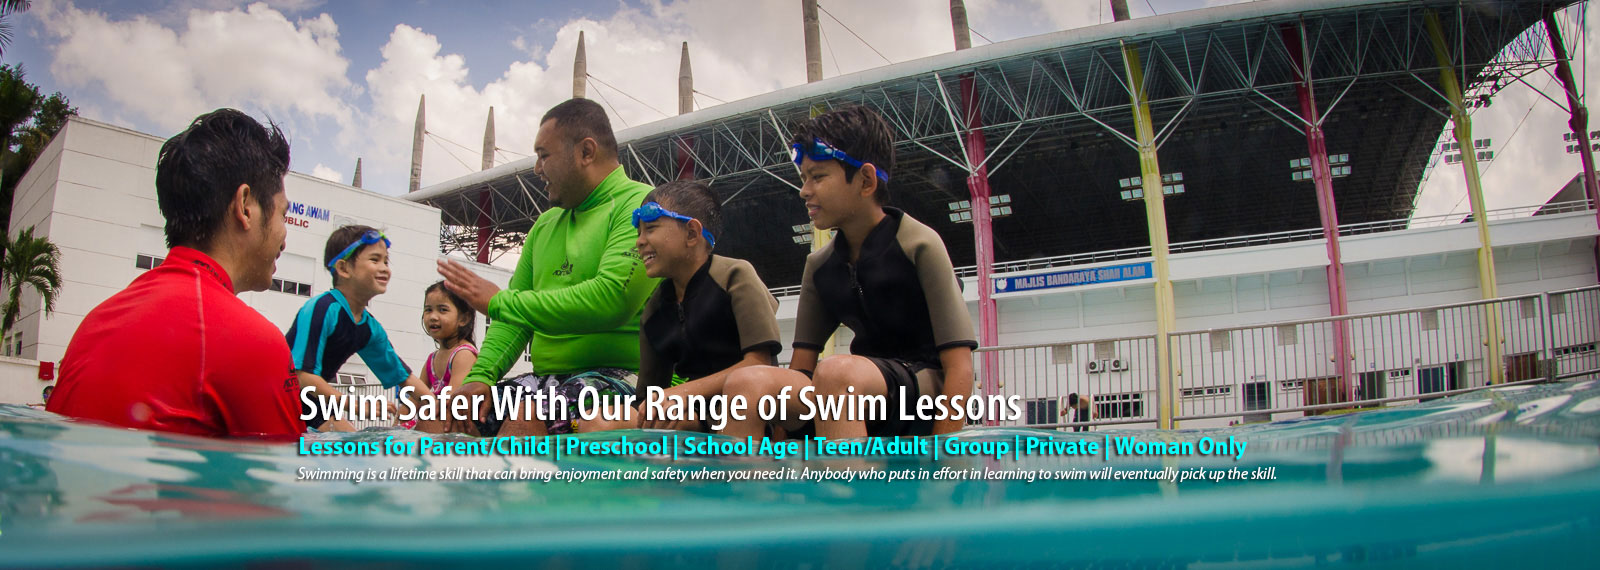 Swim safer with our range of swim lessons